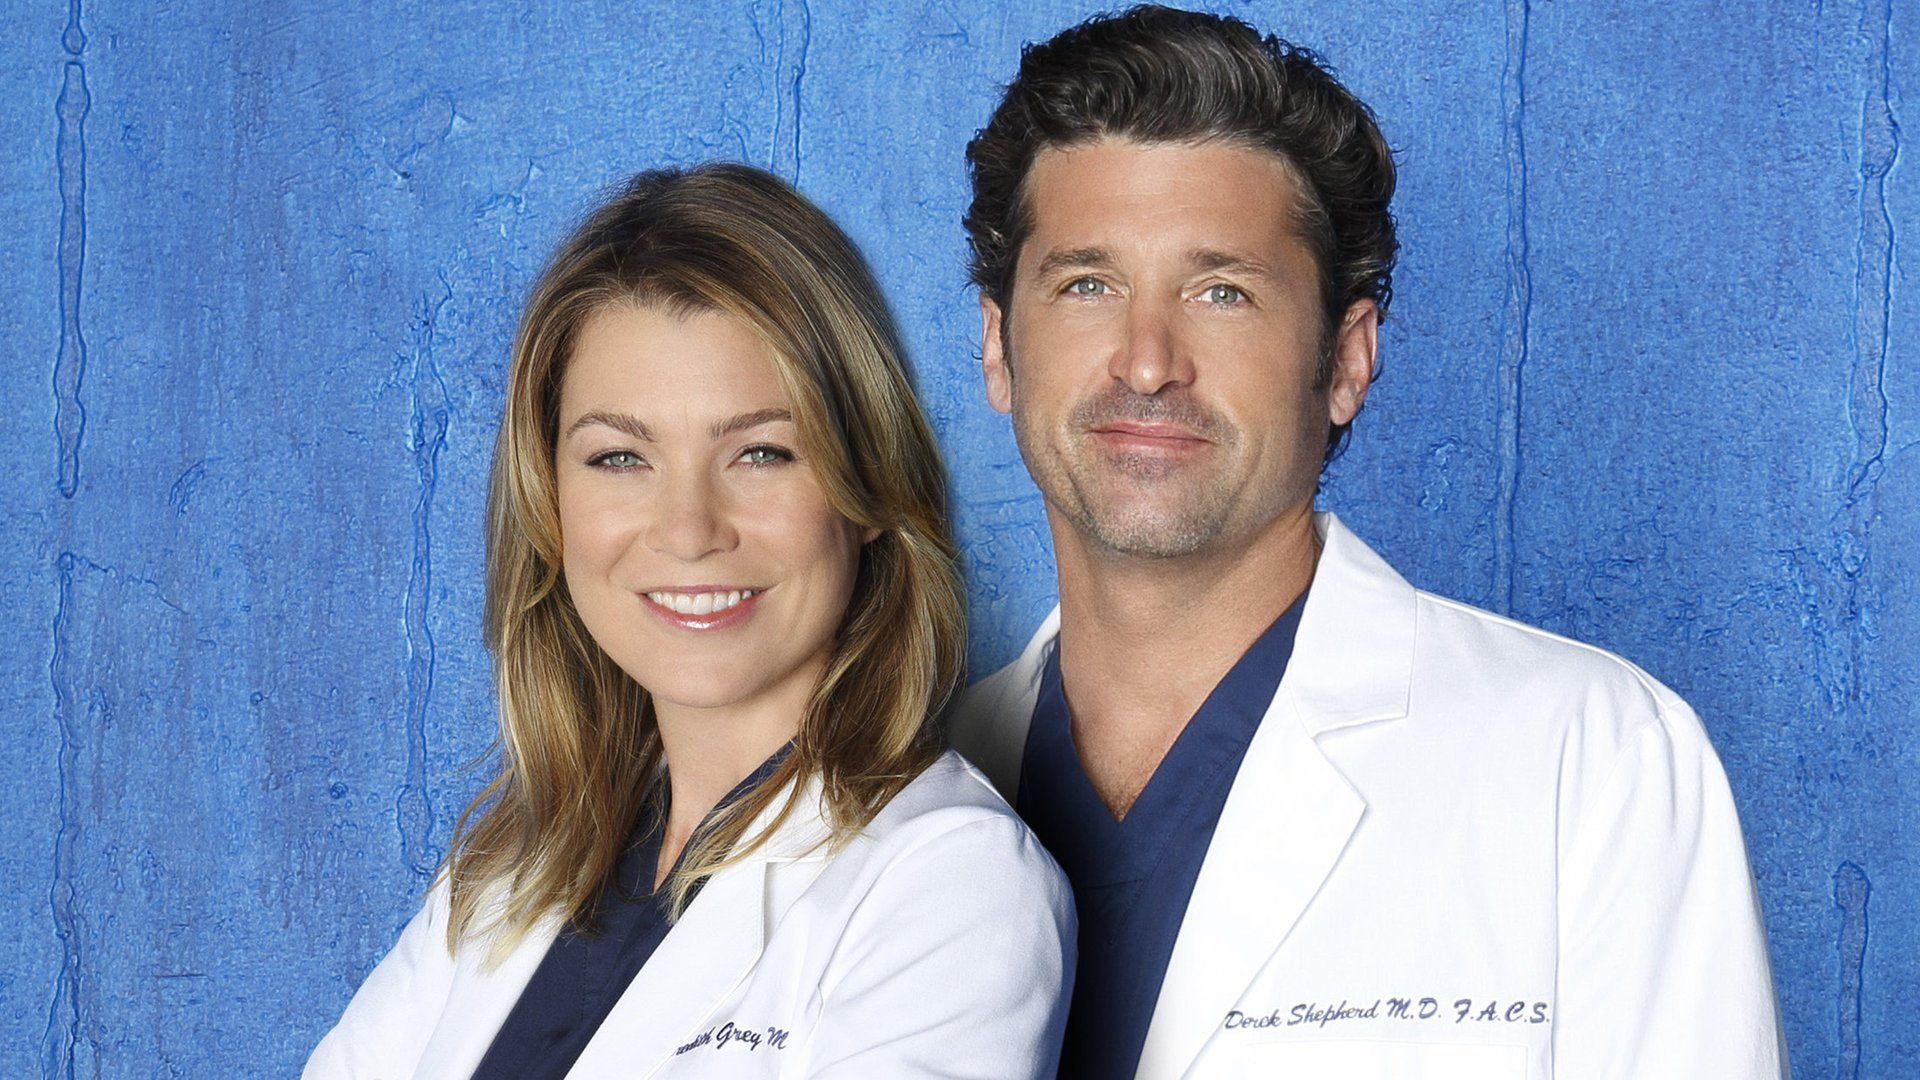 Fullwatch Greys Anatomy Season 14 Episode 13 You Really